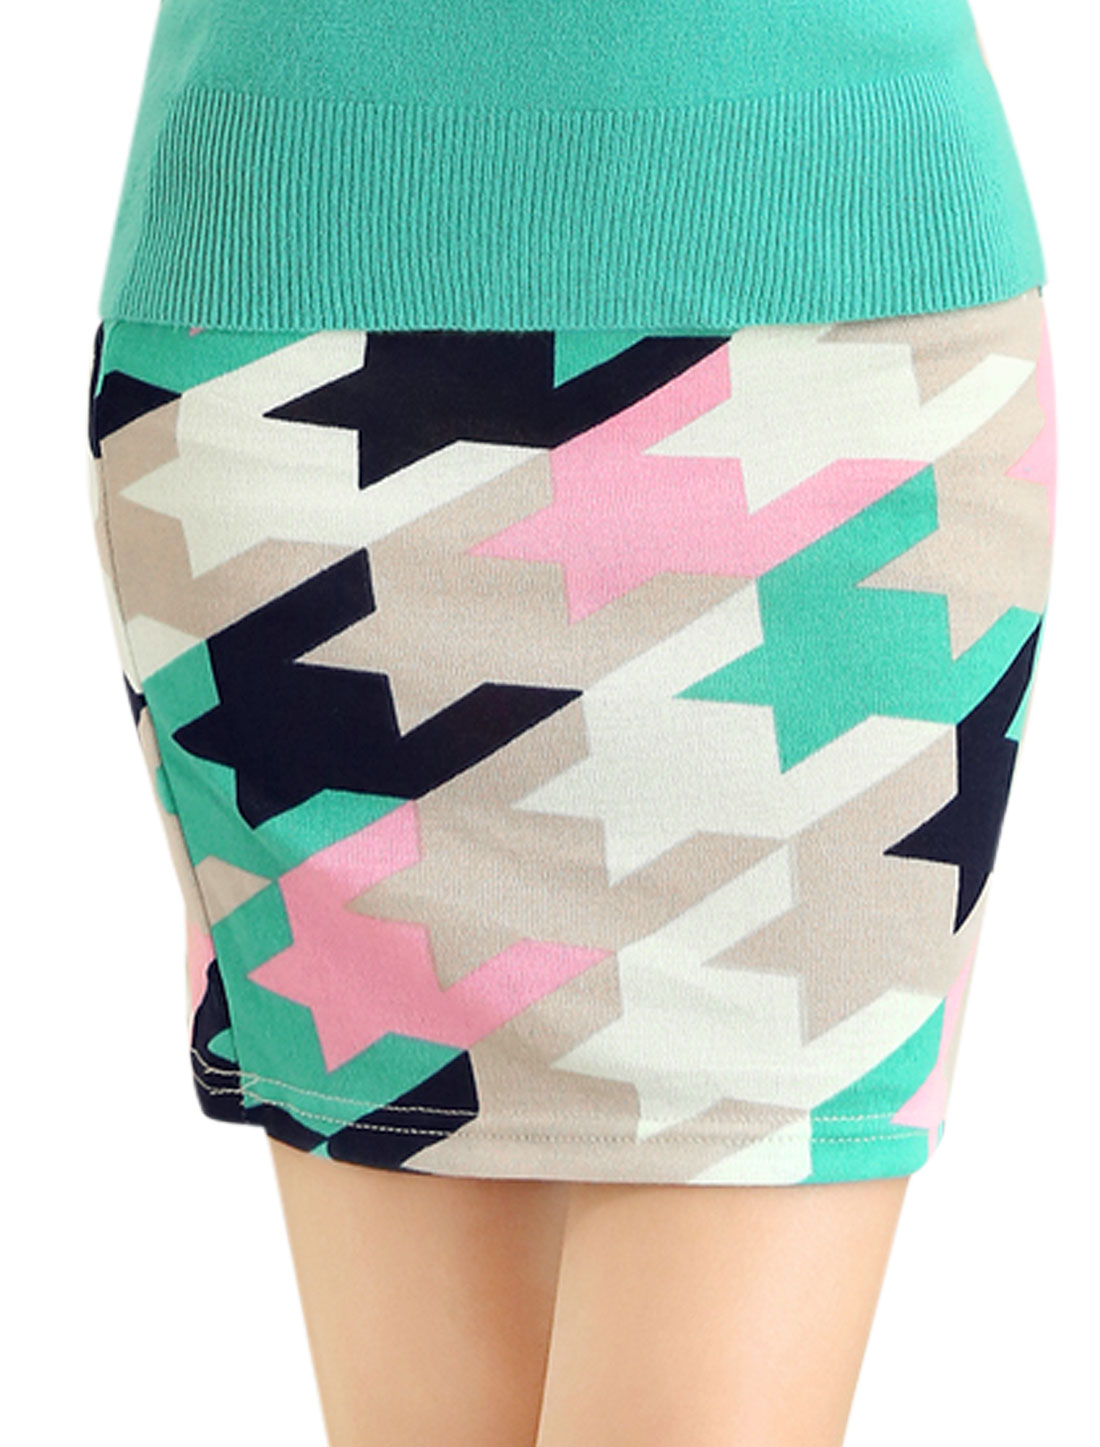 Lady Newly Allover Houndstooth Print Over Hip Design Mini Skirt Beige Pink XS